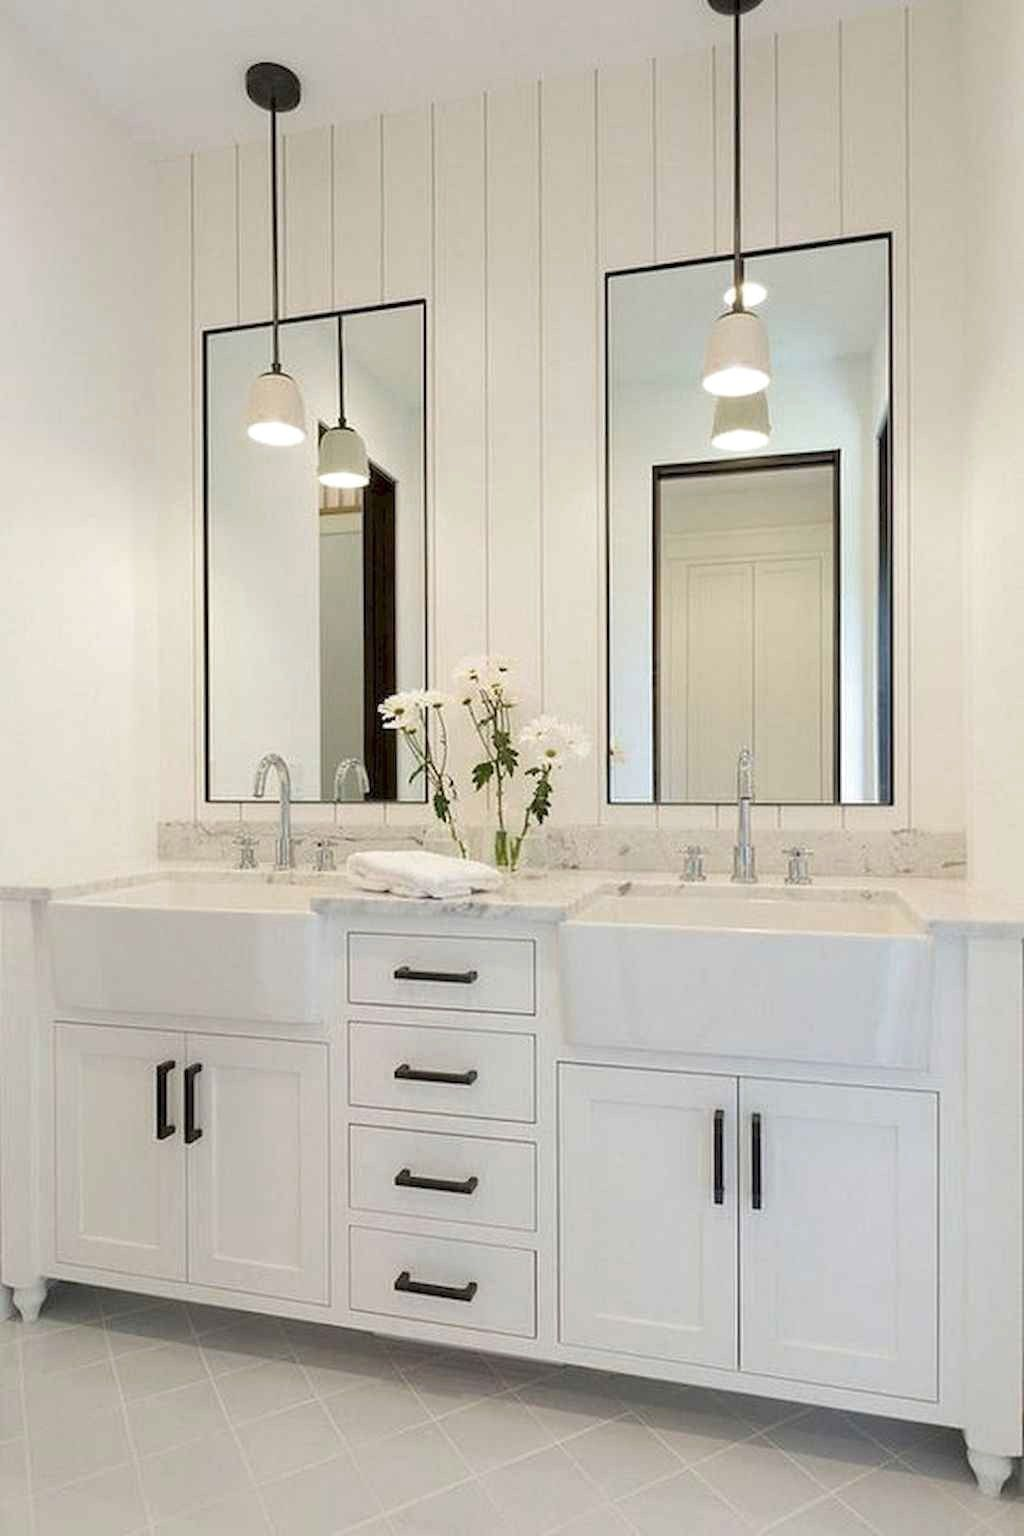 Amazing Farmhouse Bathroom Decor Ideas - FRUGAL LIVING